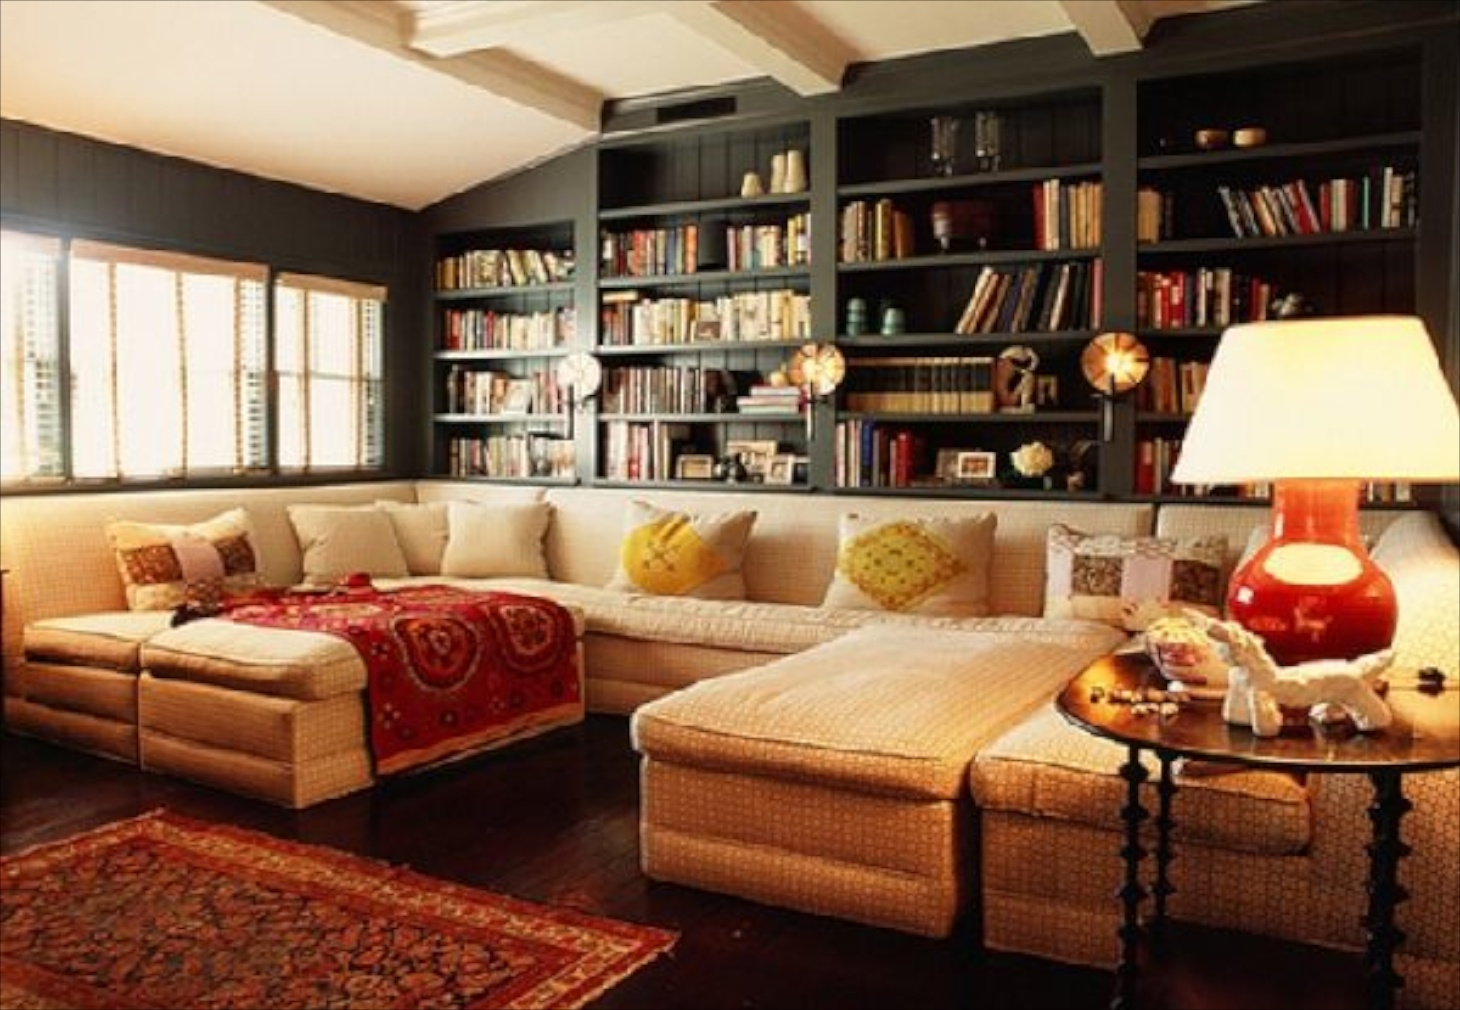 23 sofas and bookcase ideas in cozy living room design for Traditional living room designs